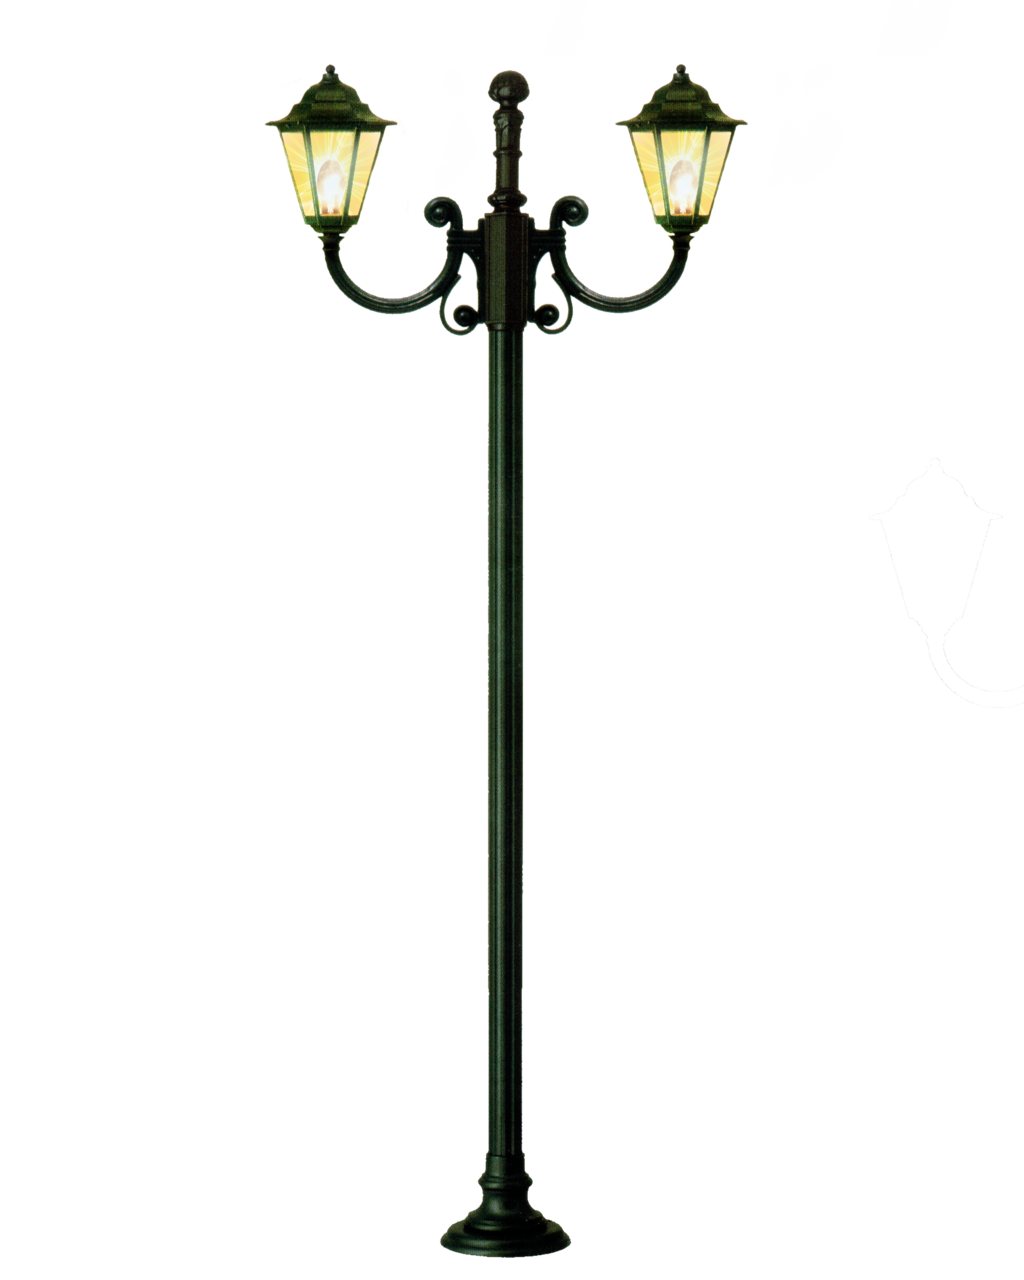 Street Light PNG Transparent Image - Streetlamp HD PNG